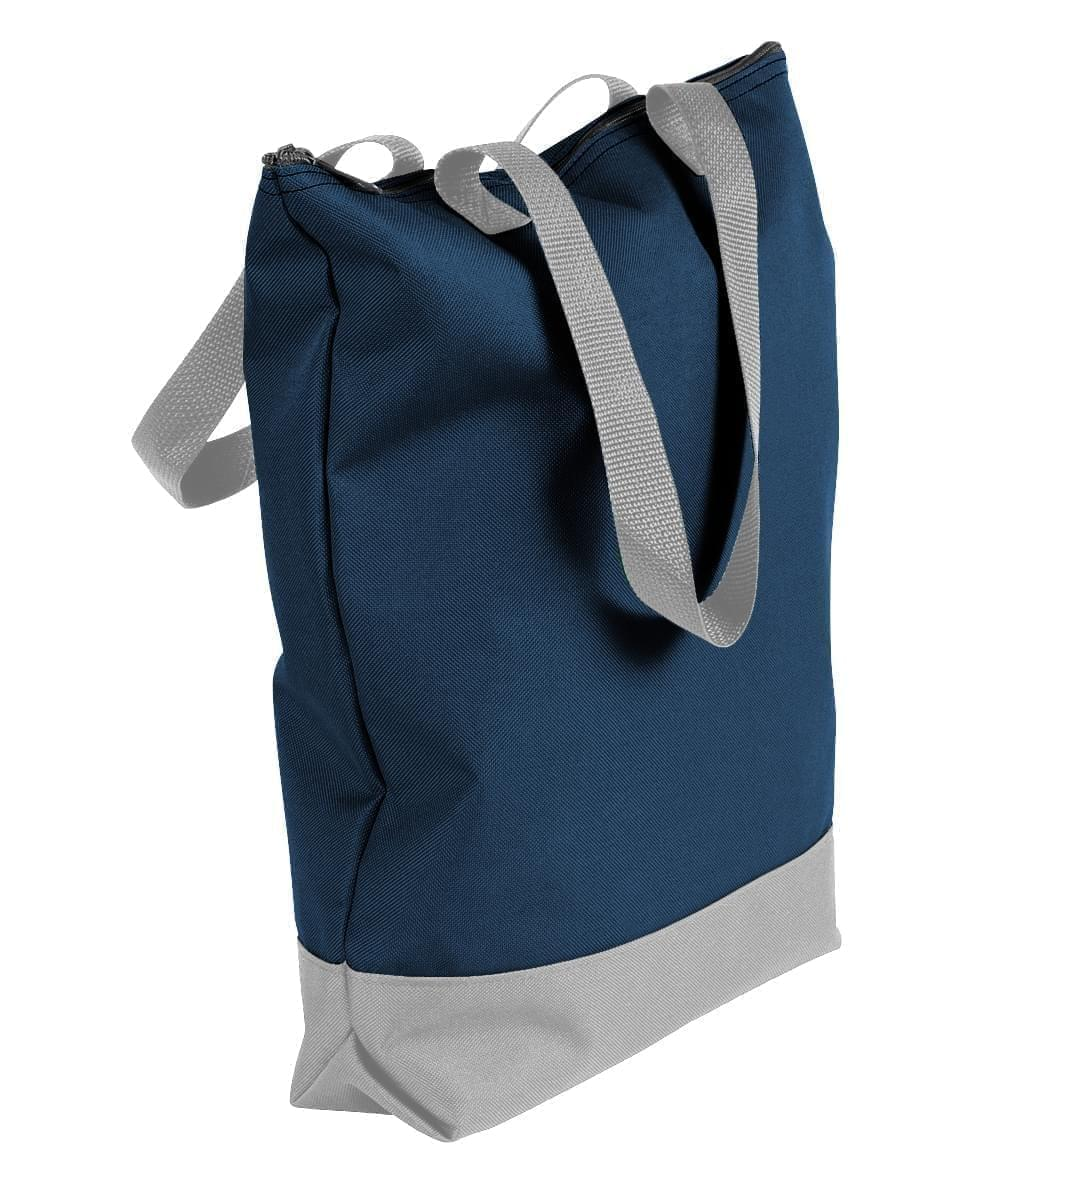 USA Made Poly Notebook Tote Bags, Navy-Grey, 1AAMX1UAWU